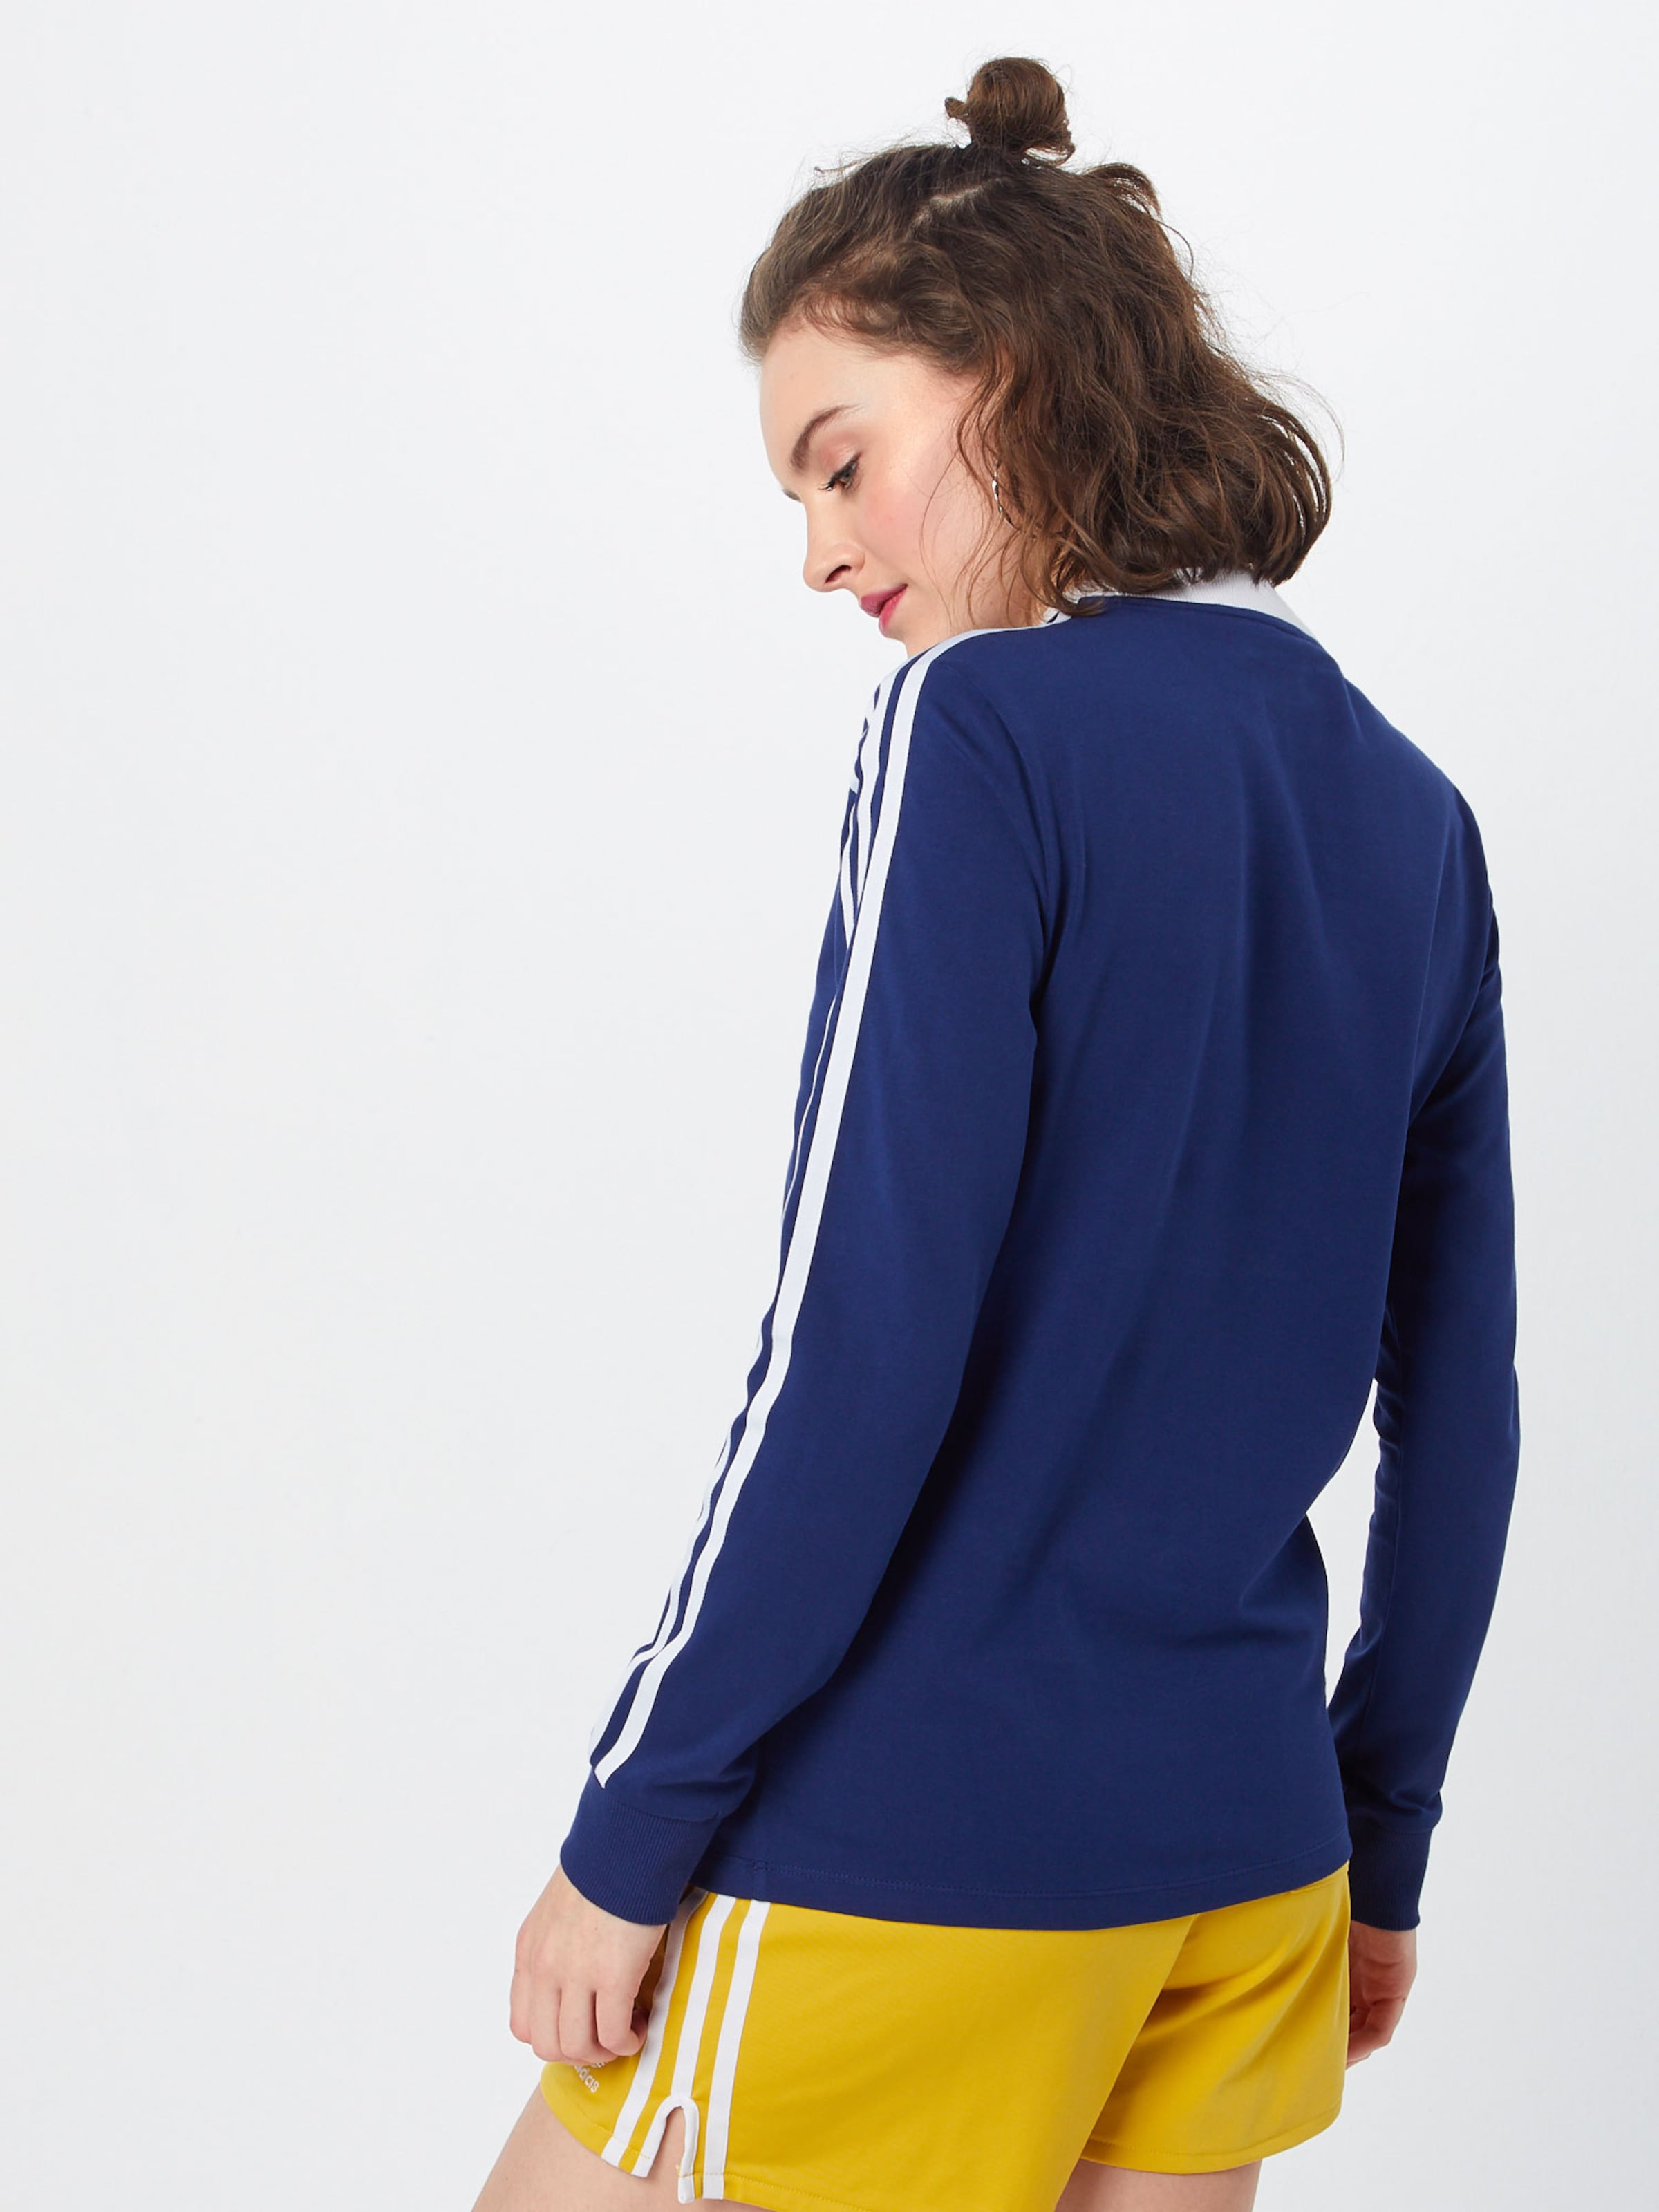 Originals Shirt Originals In Shirt Shirt In Adidas Adidas Originals BlauWeiß Adidas BlauWeiß l1JcKF